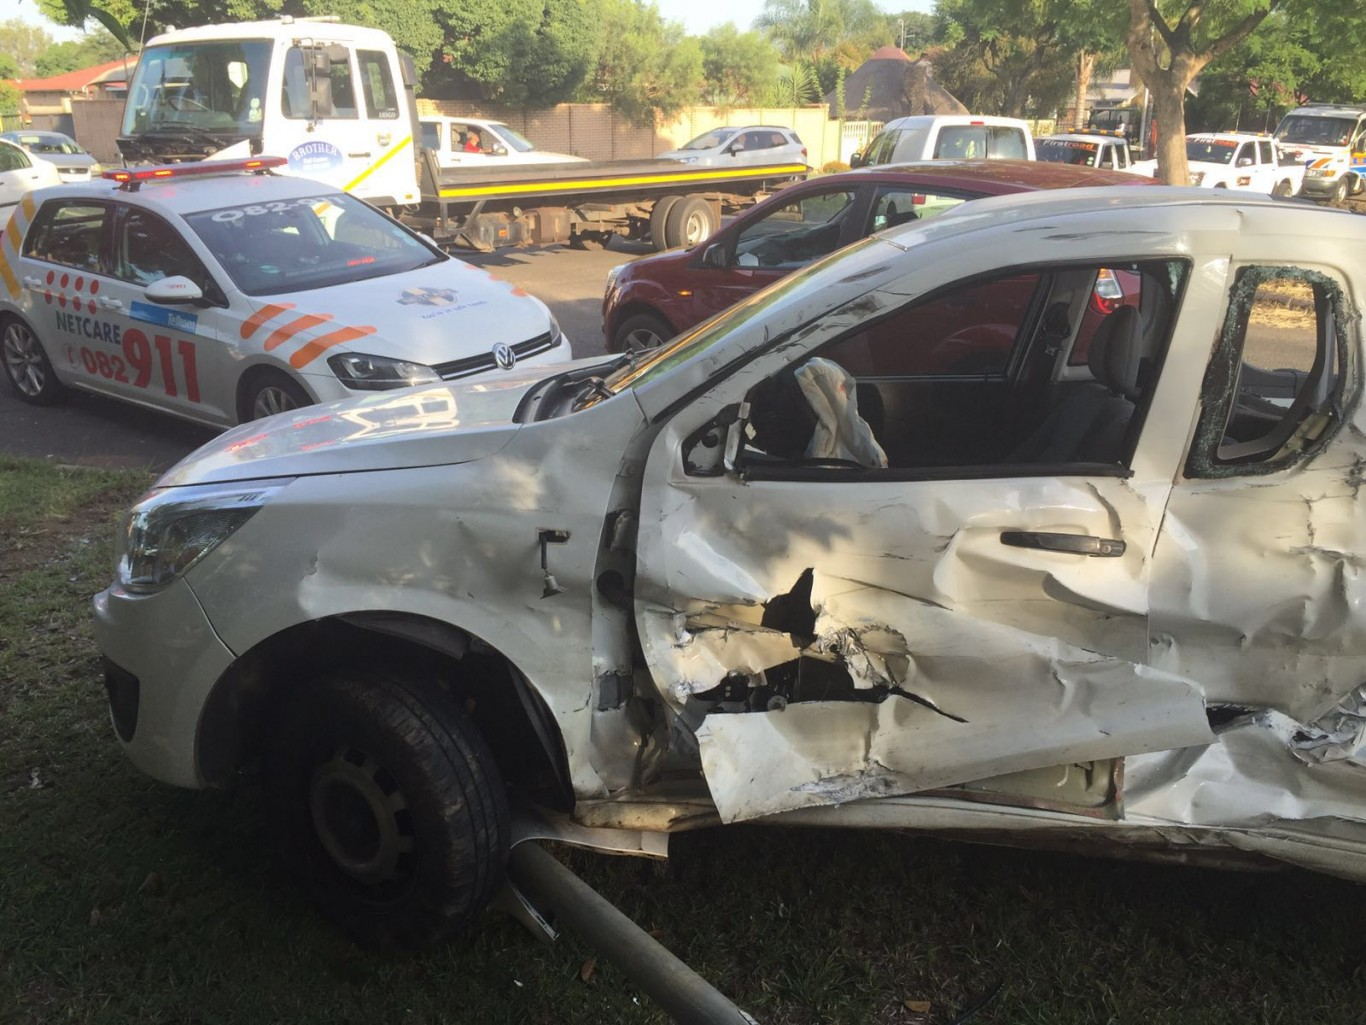 One injured in collision in Rietfontein, Pretoria